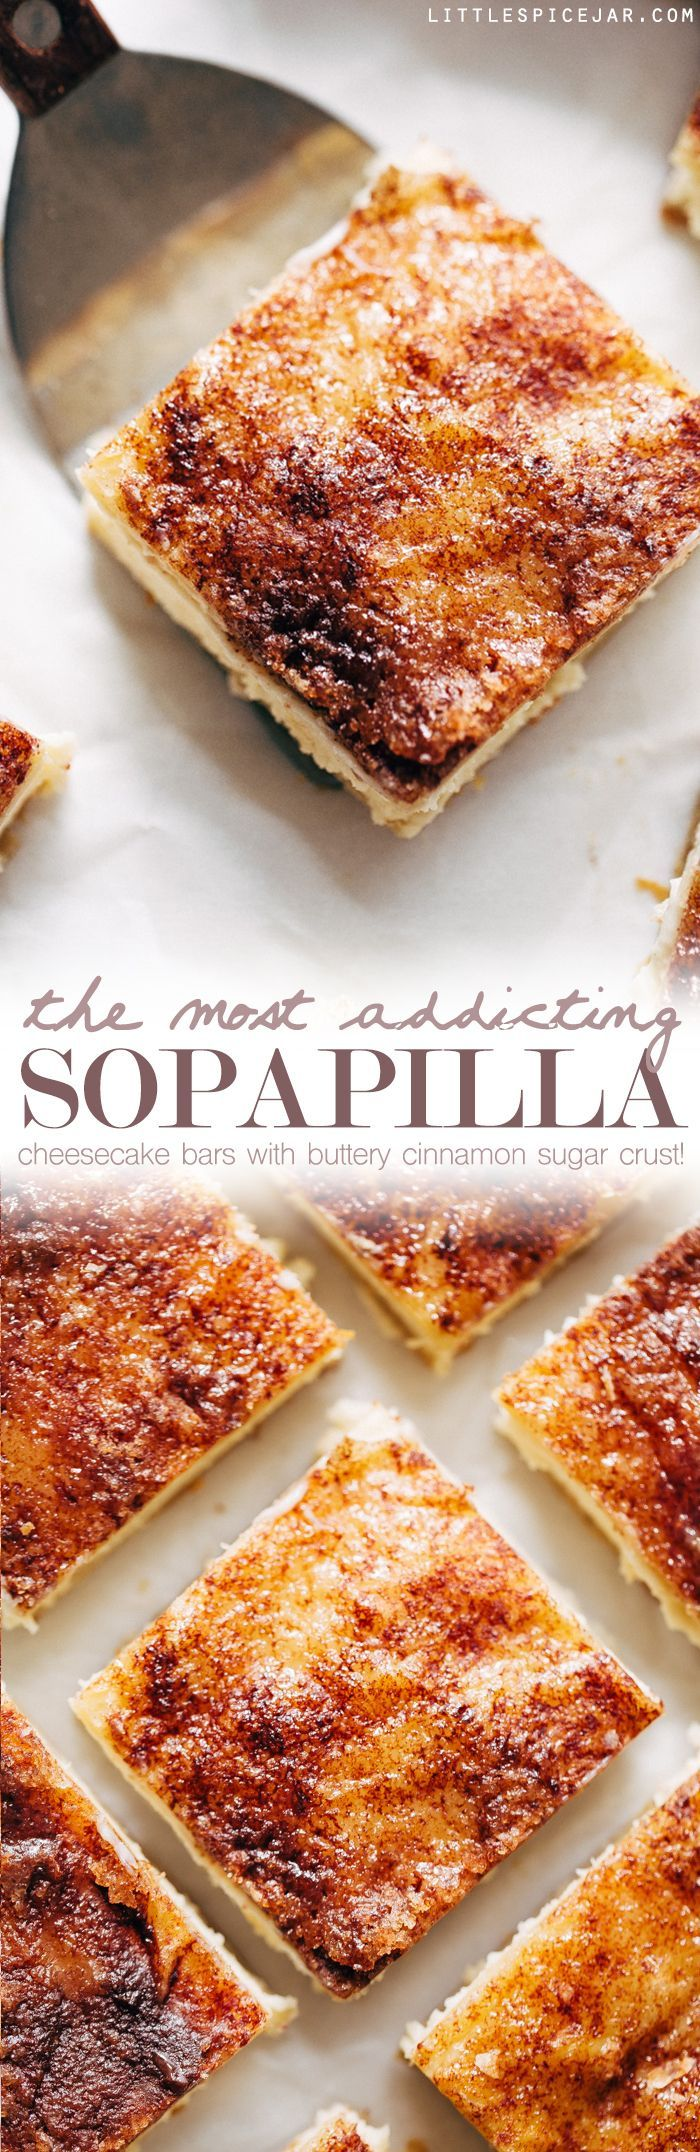 The Most Addicting Sopapilla Cheesecake Bars made with just 8 simple ingredients! These bars don't use the crescent roll dough! #sopapillacheesecakebars #cheesecake #cheesecakebars #snickerdoodle | http://Littlespicejar.com